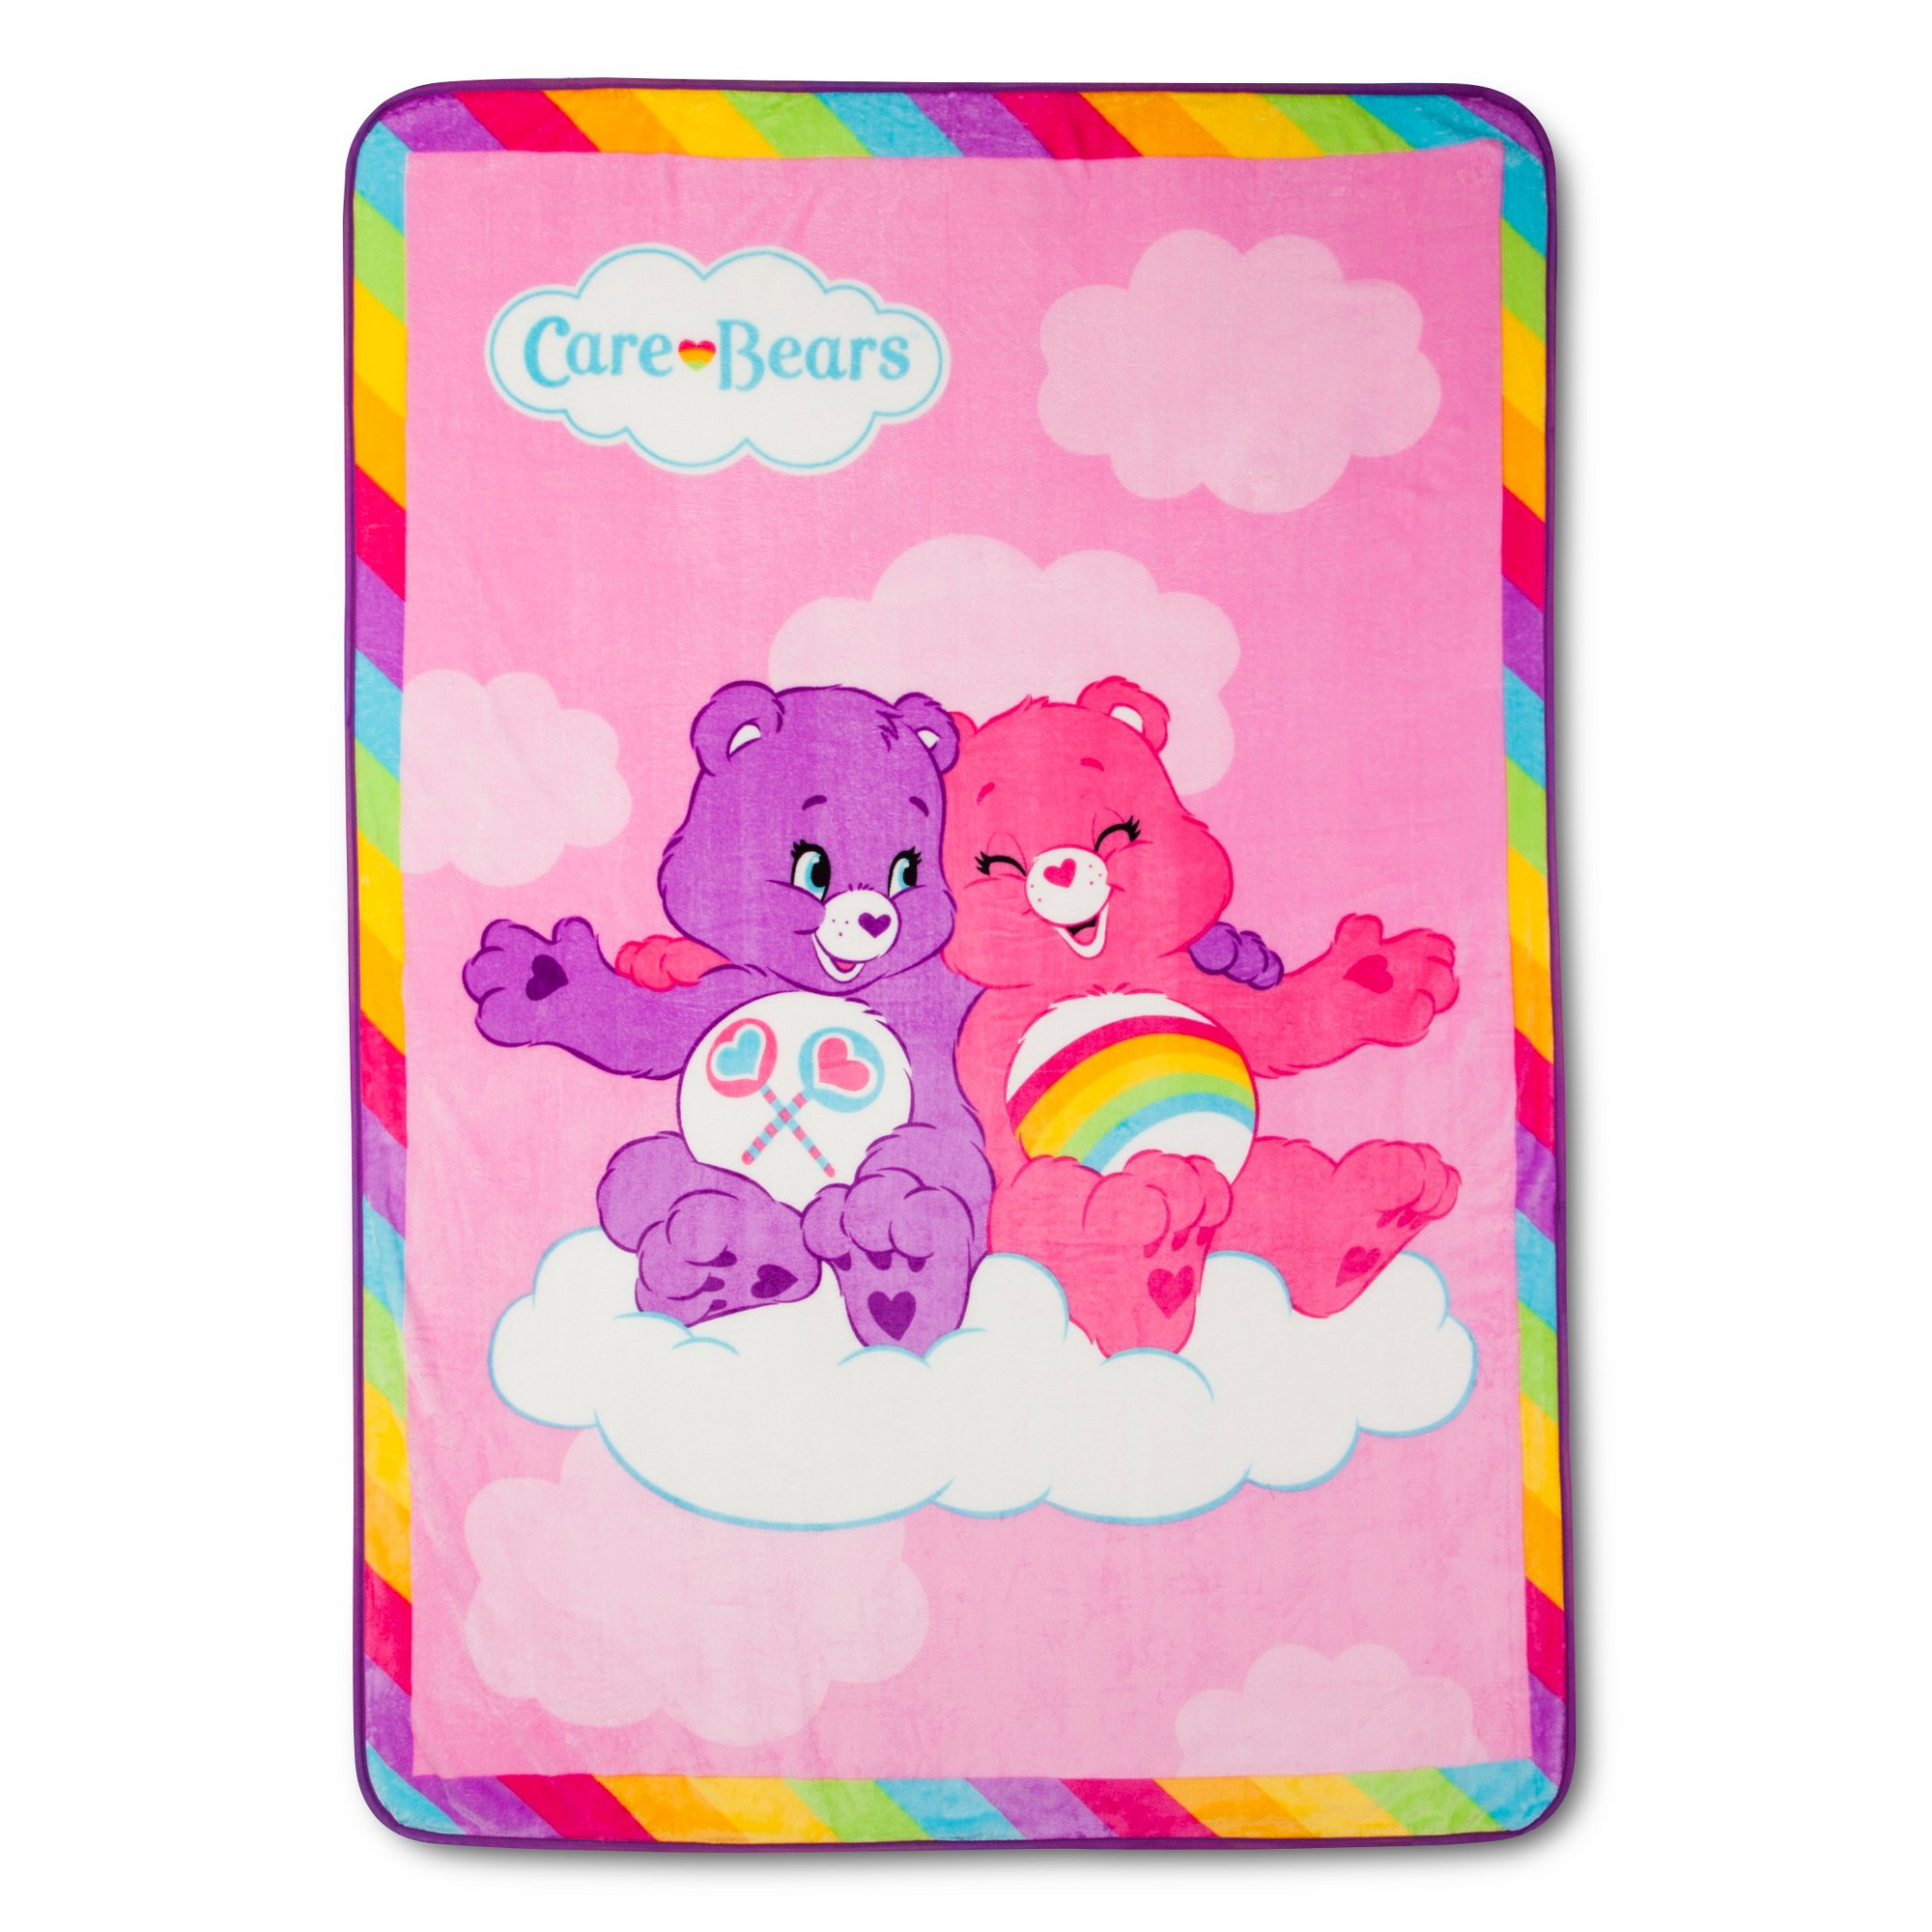 Care Bears Bed Blanket 62x90